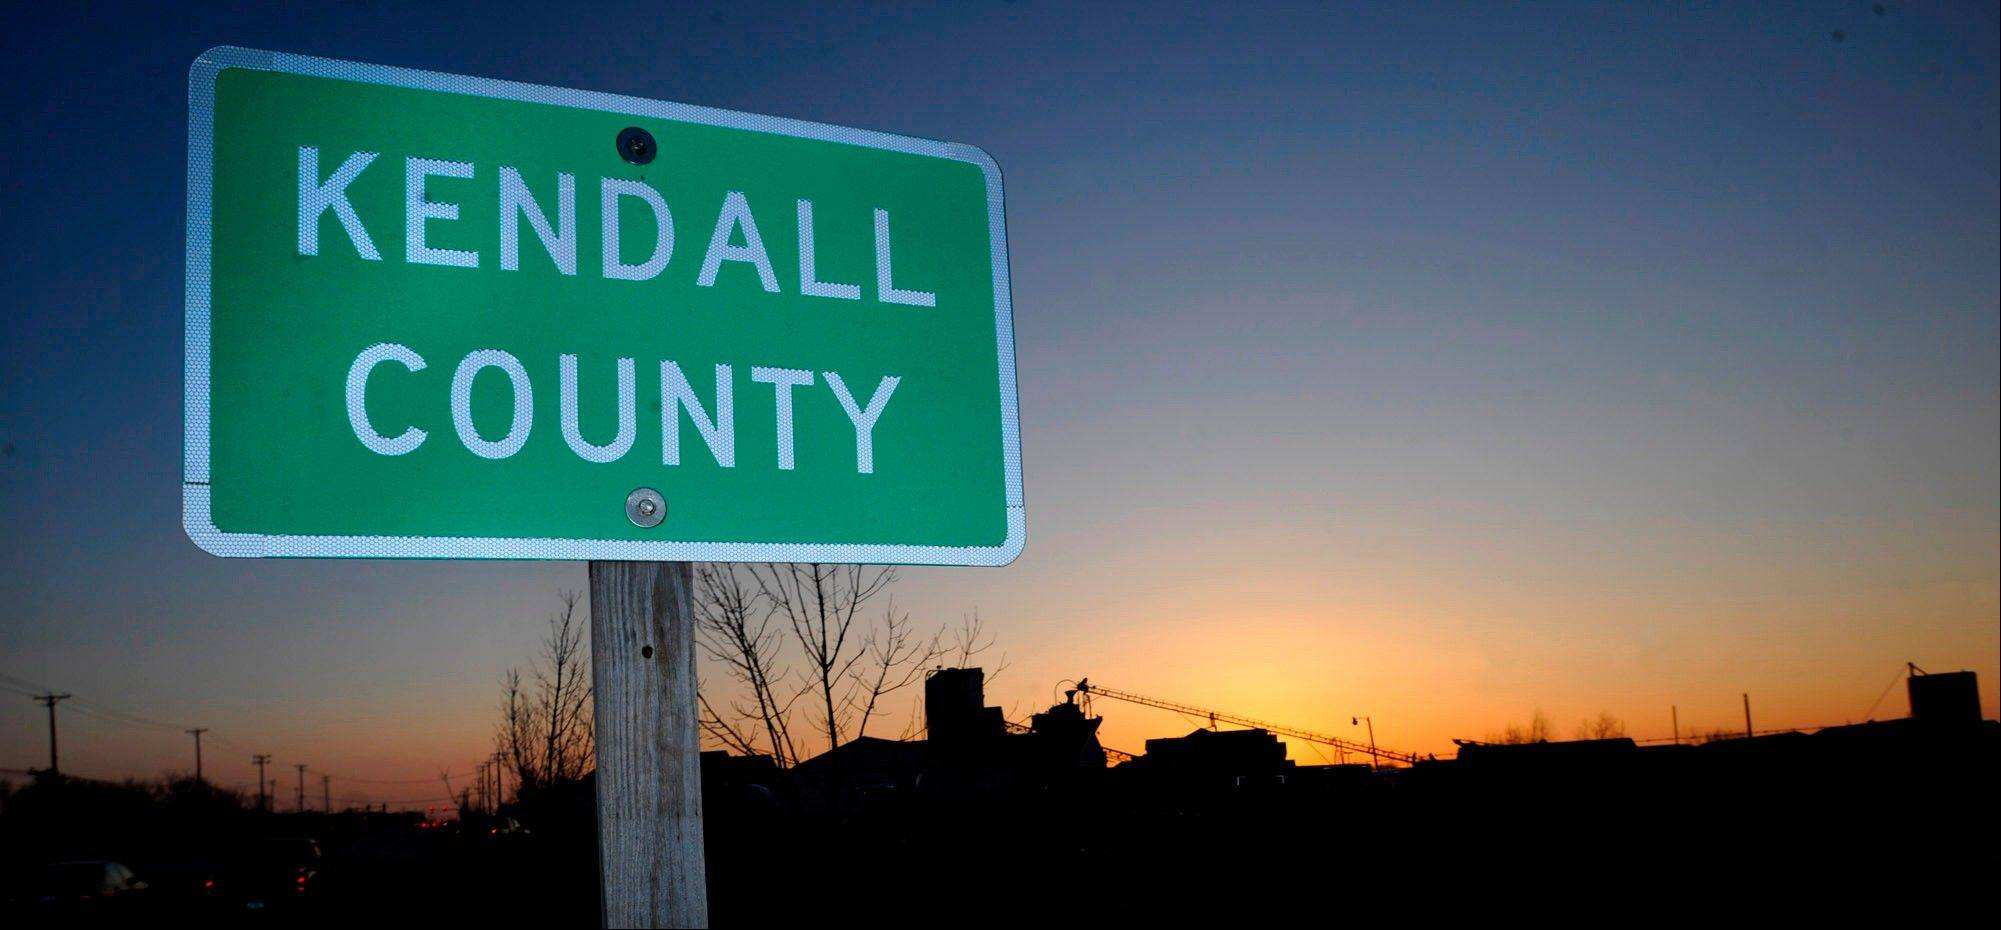 Kendall County, the nation's No. 1 fastest-growing county from 2000 to 2010, was part of an exurban wave in the heady 2000s that more than doubled the county's population. Now, outlying suburbs are seeing their growth fizzle.